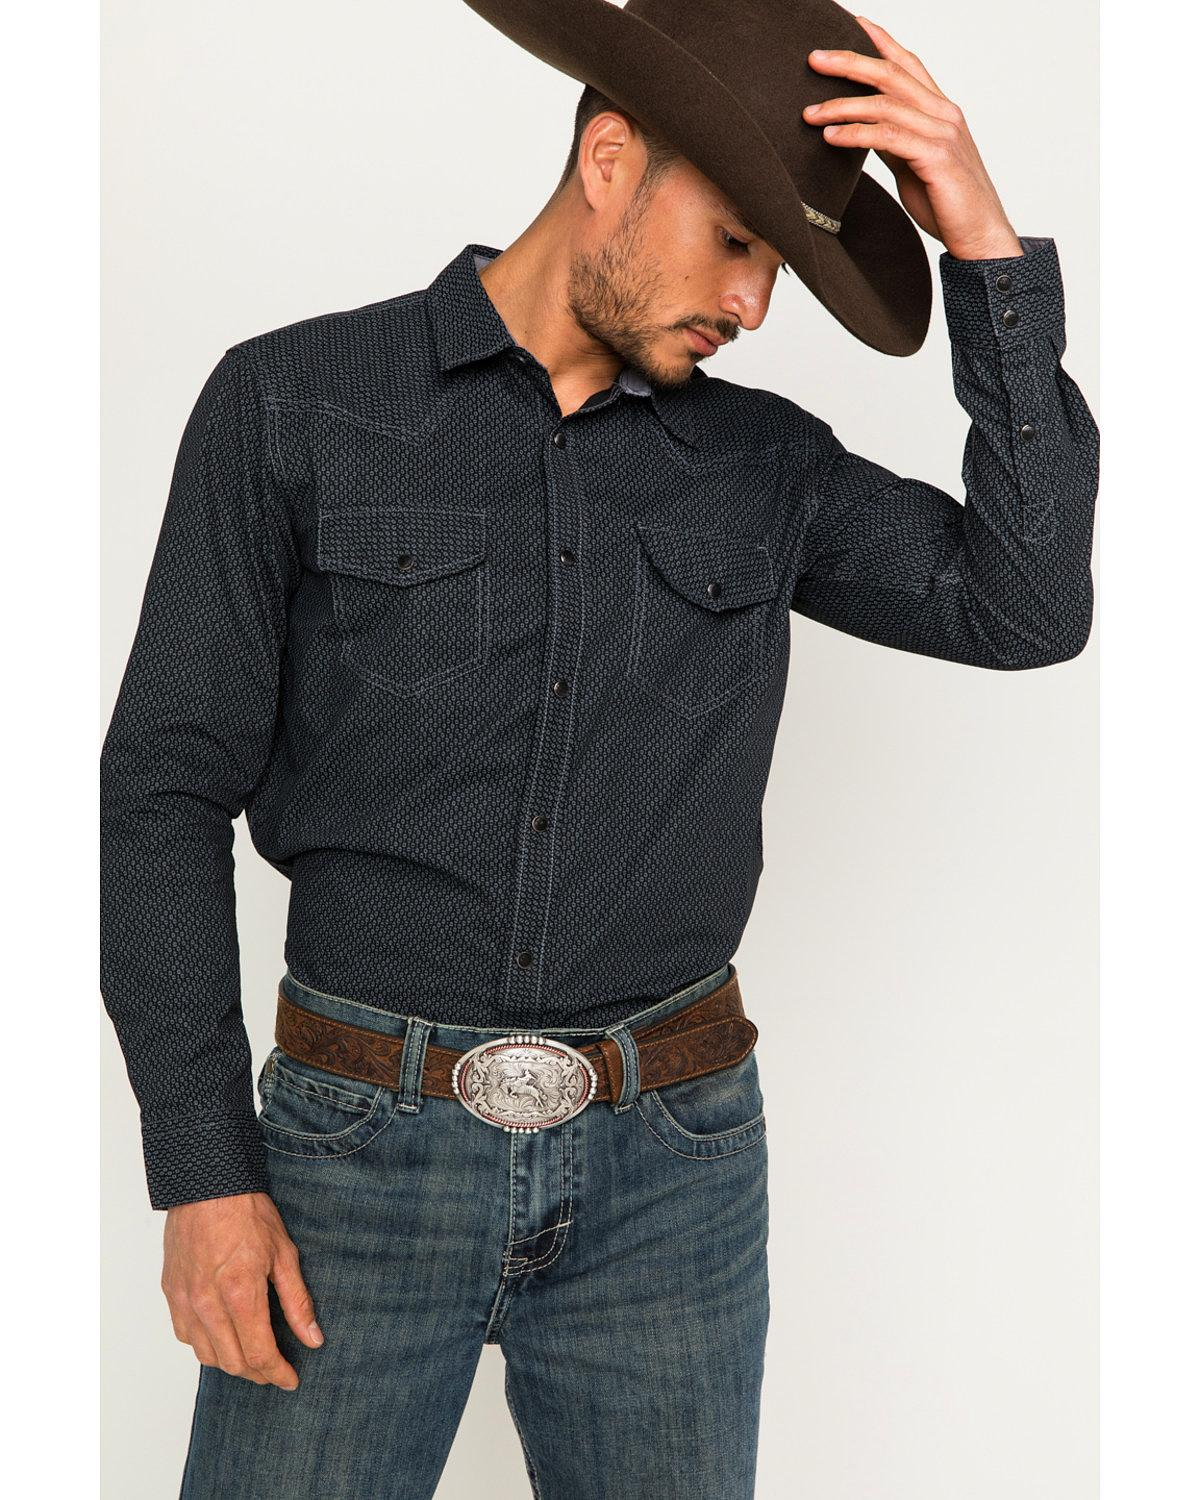 Men's Long Sleeve Country Shirts